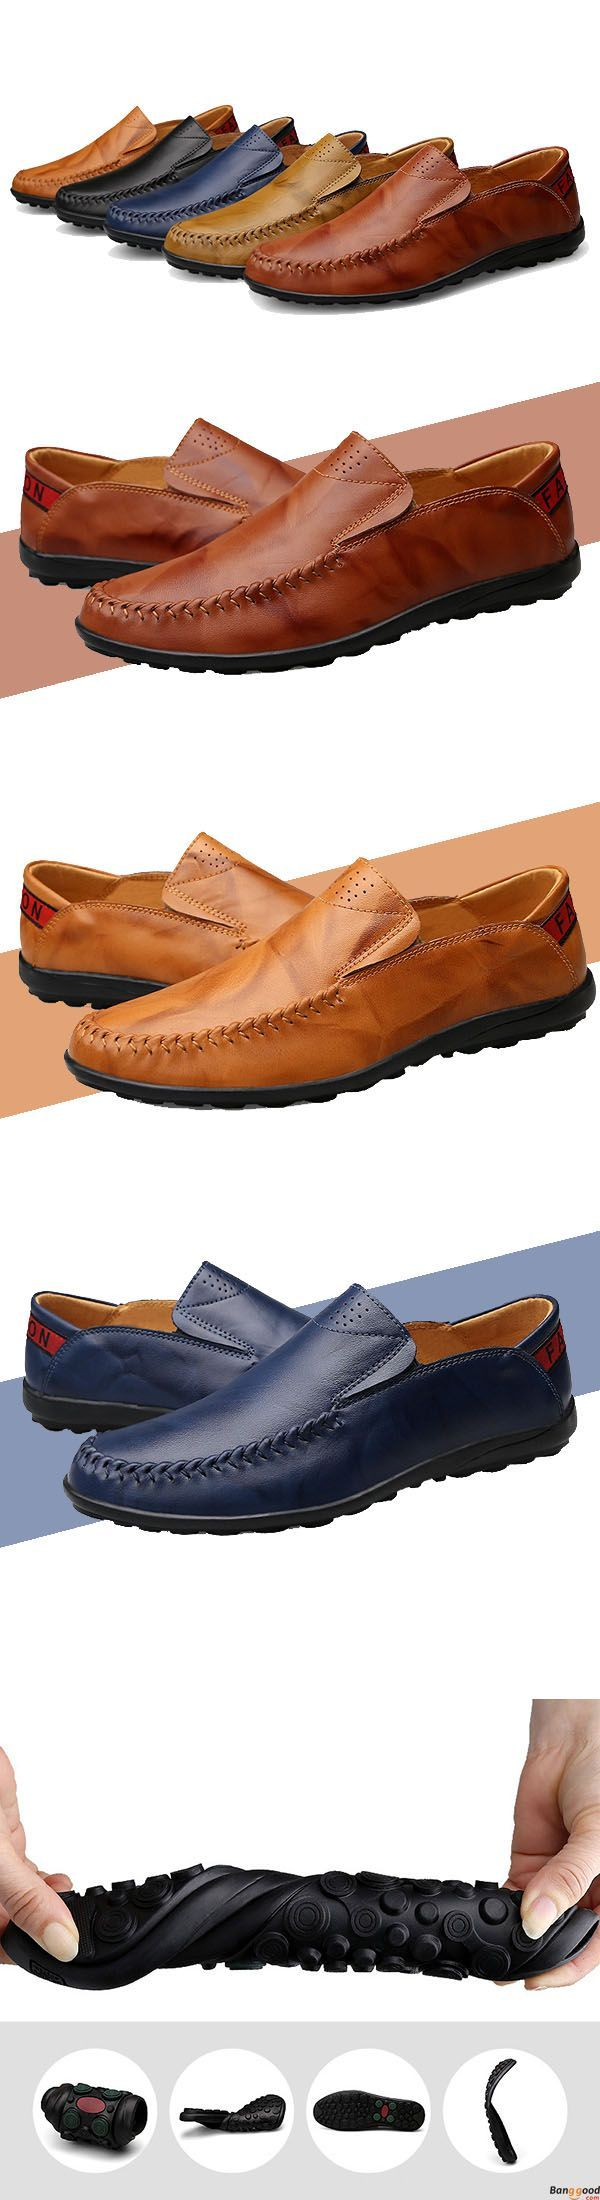 US$52.81+ Free Shipping. 5 colors available. Men loafers, casual comfortable shoes,  oxford shoes, boots, Fashion and chic, casual shoes, men's flats, oxford boots,leather short boots,loafers, casual oxford shoes,slip on  men's style, chic style, fashion